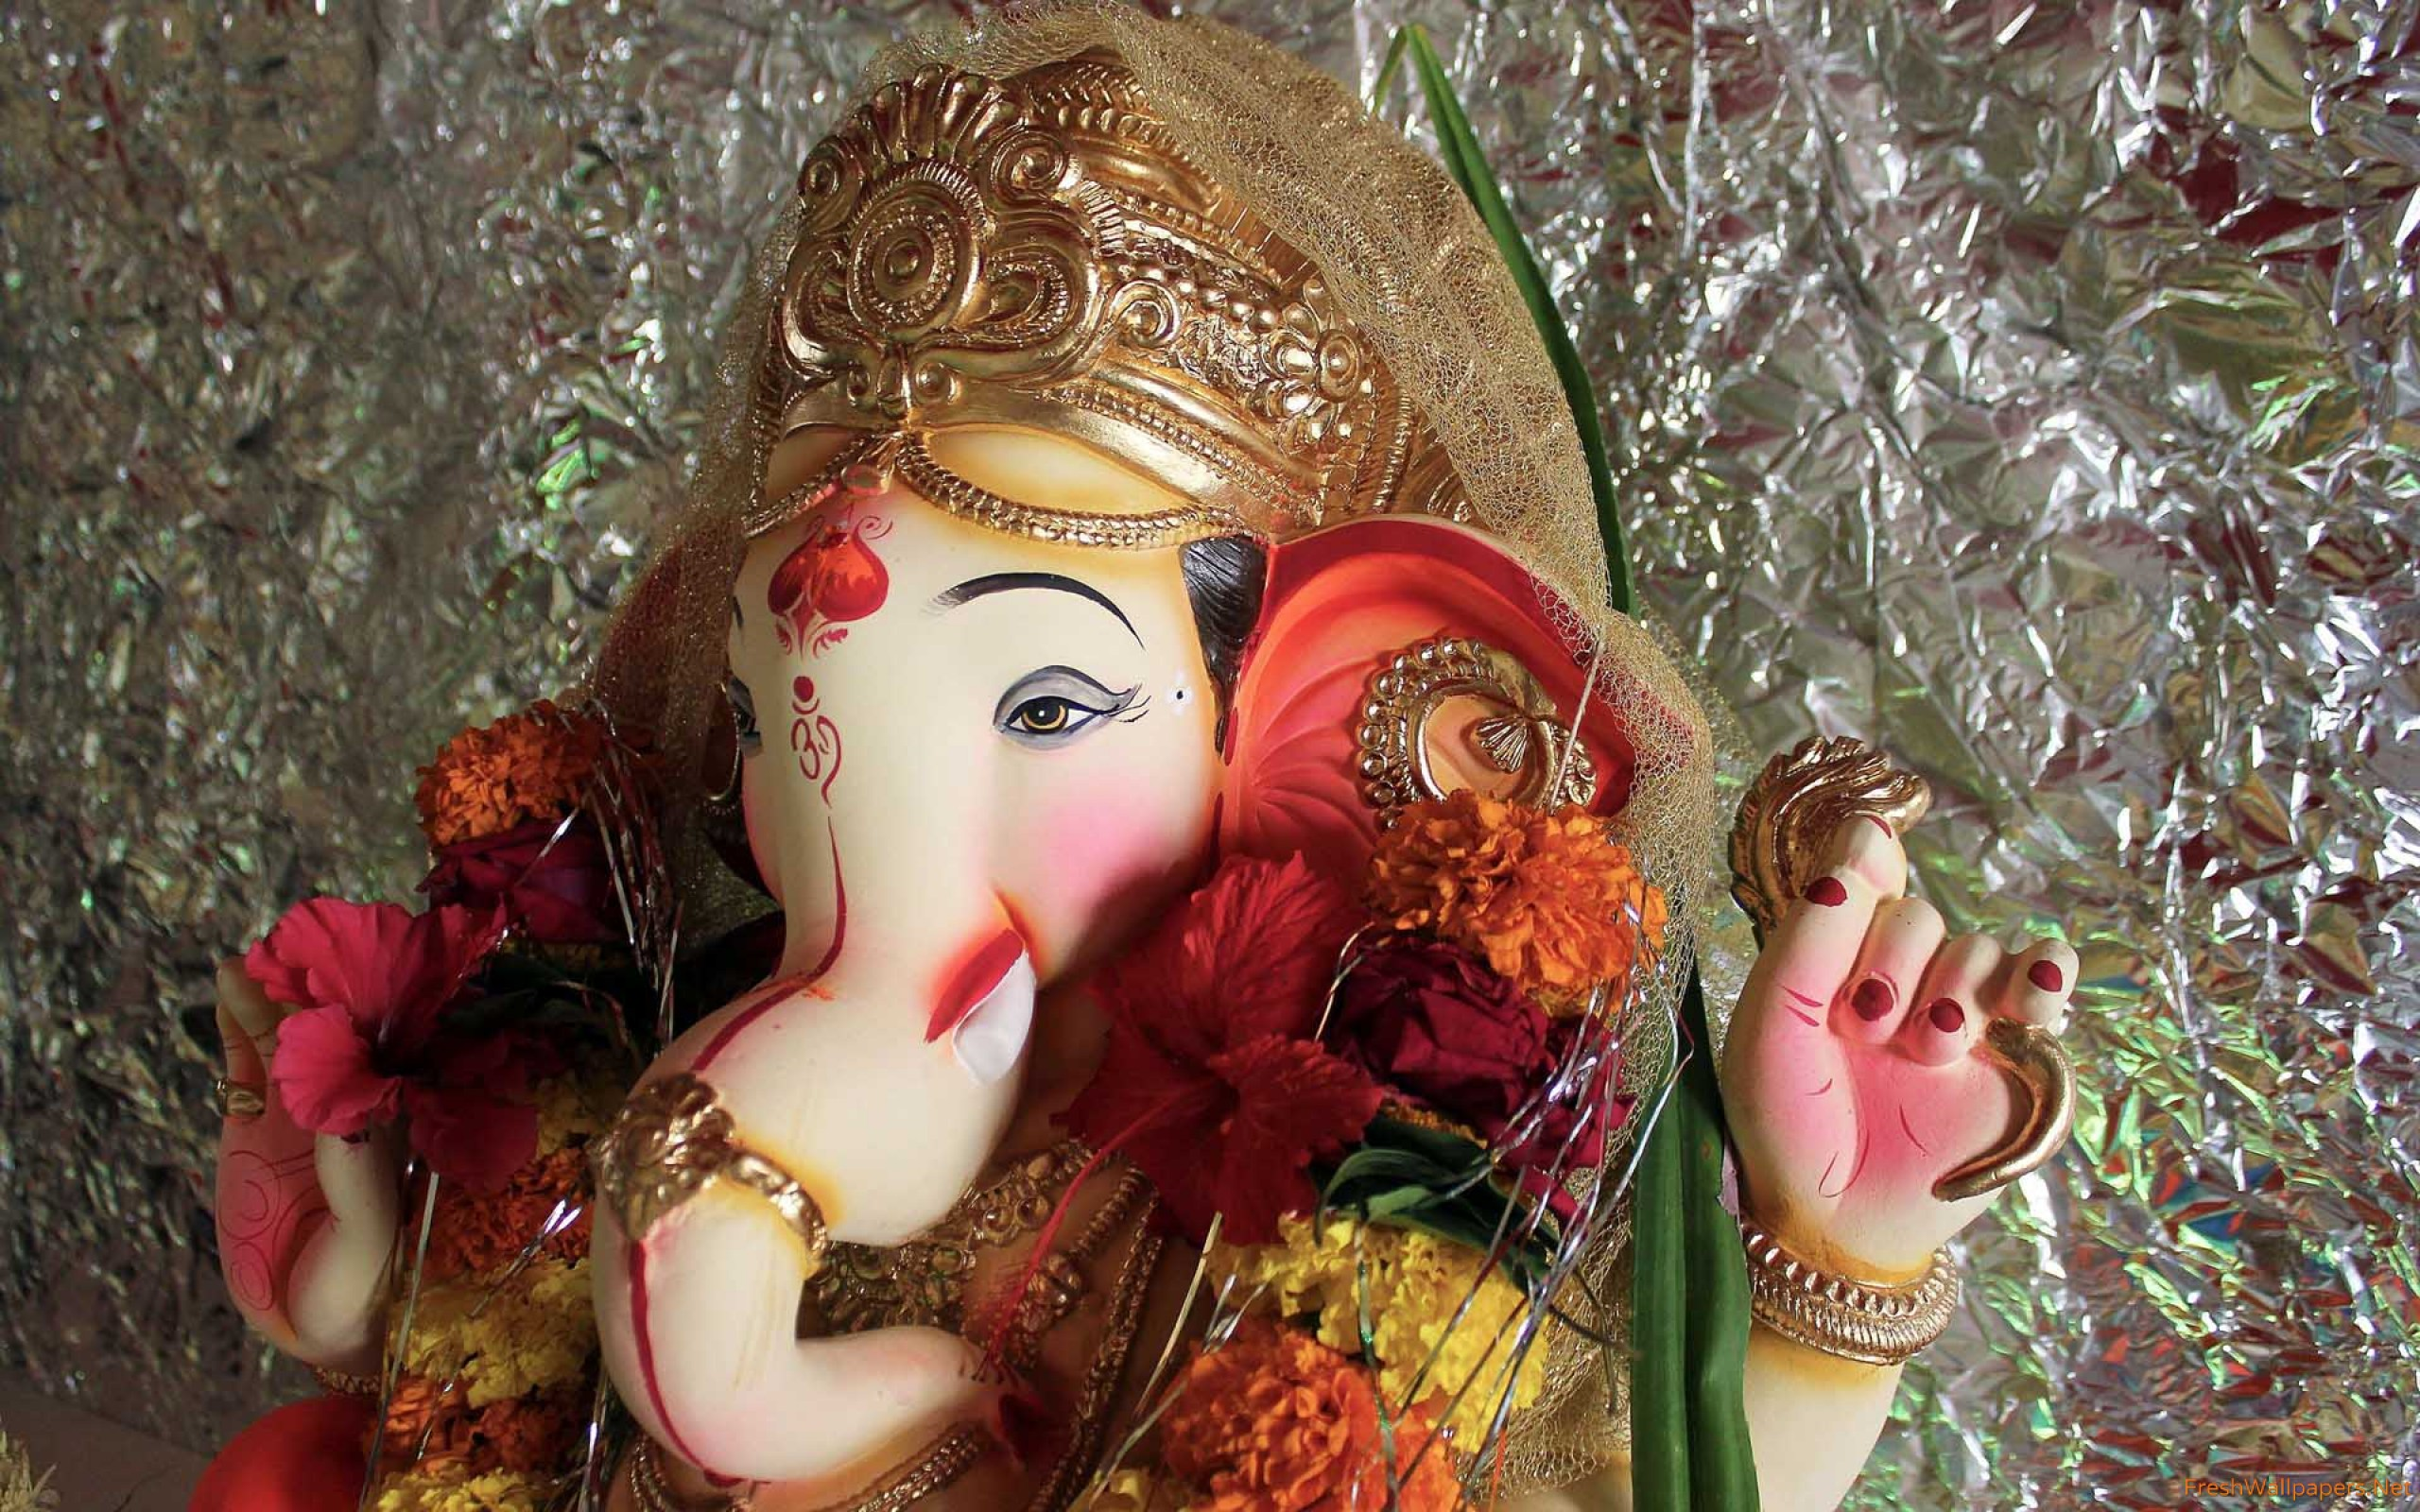 Ganesh Chaturthi 2016 Wallpaper Full Lovely Image Hd